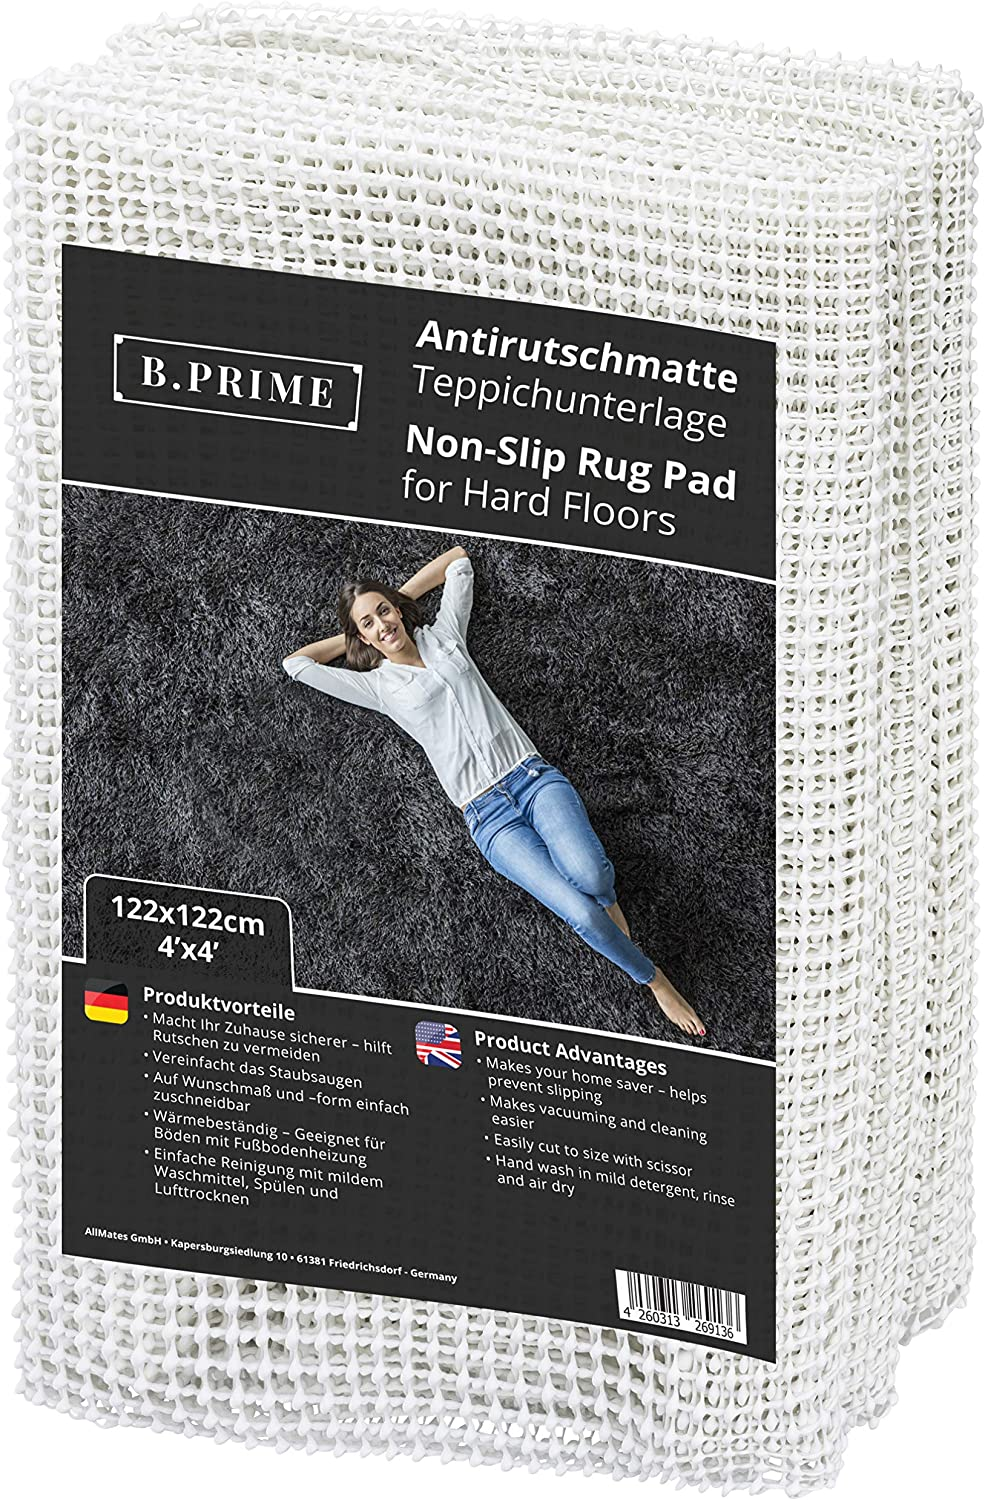 B.PRIME 4x4-Feet Non-Slip Rug Underlay Pad for Hard Floors. Different Size Options Available